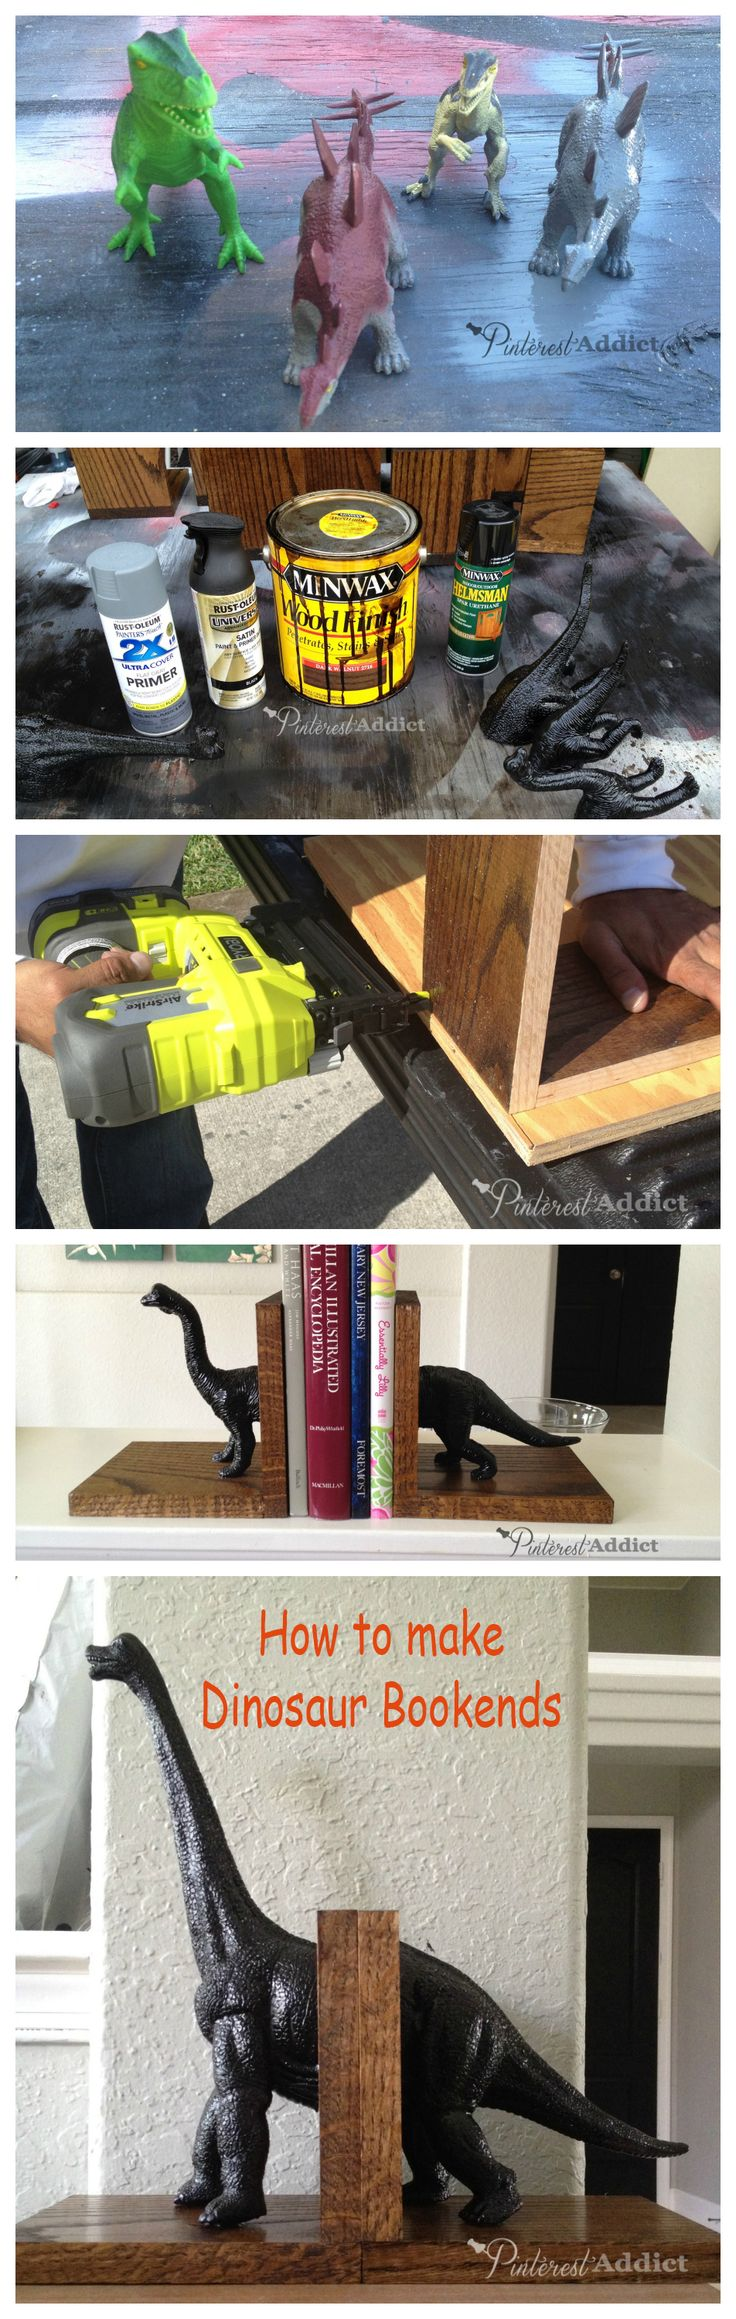 How to make dinosaur bookends @ Pinterest Addict